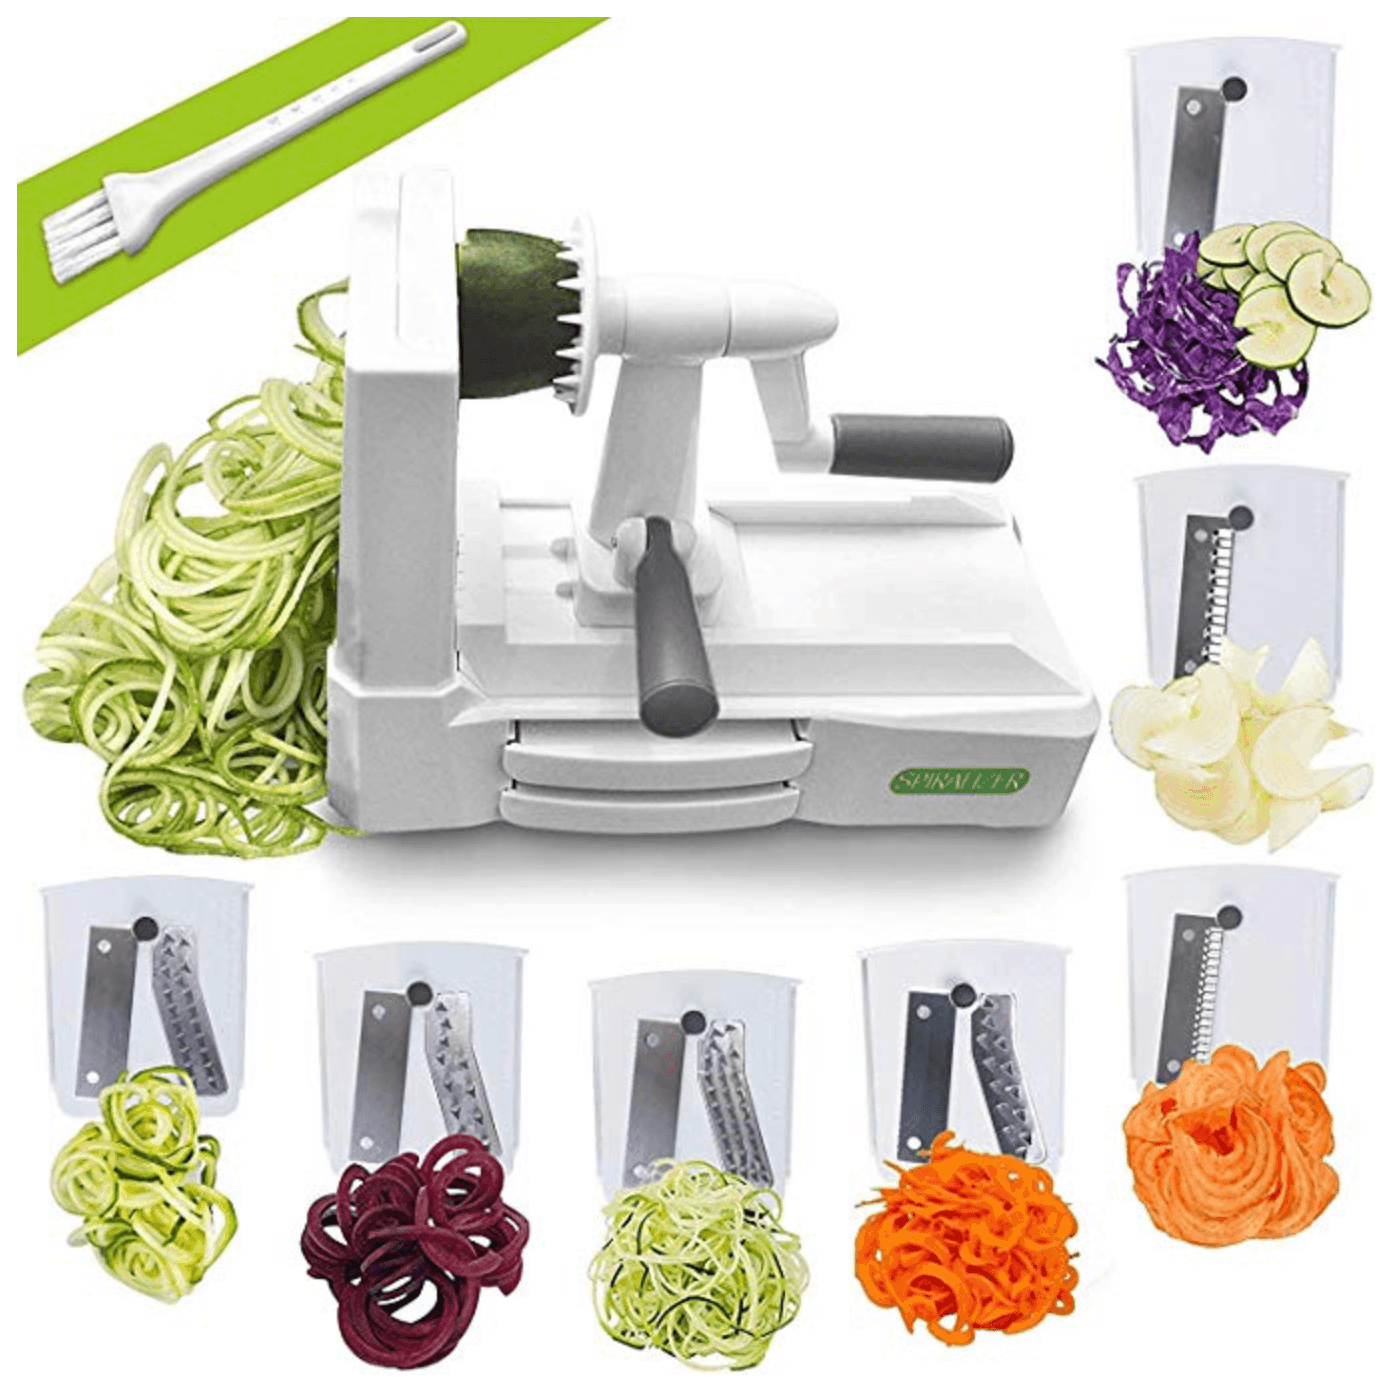 Inspiralizer Spiralizer that is a fun and easy vegetable noodle maker!